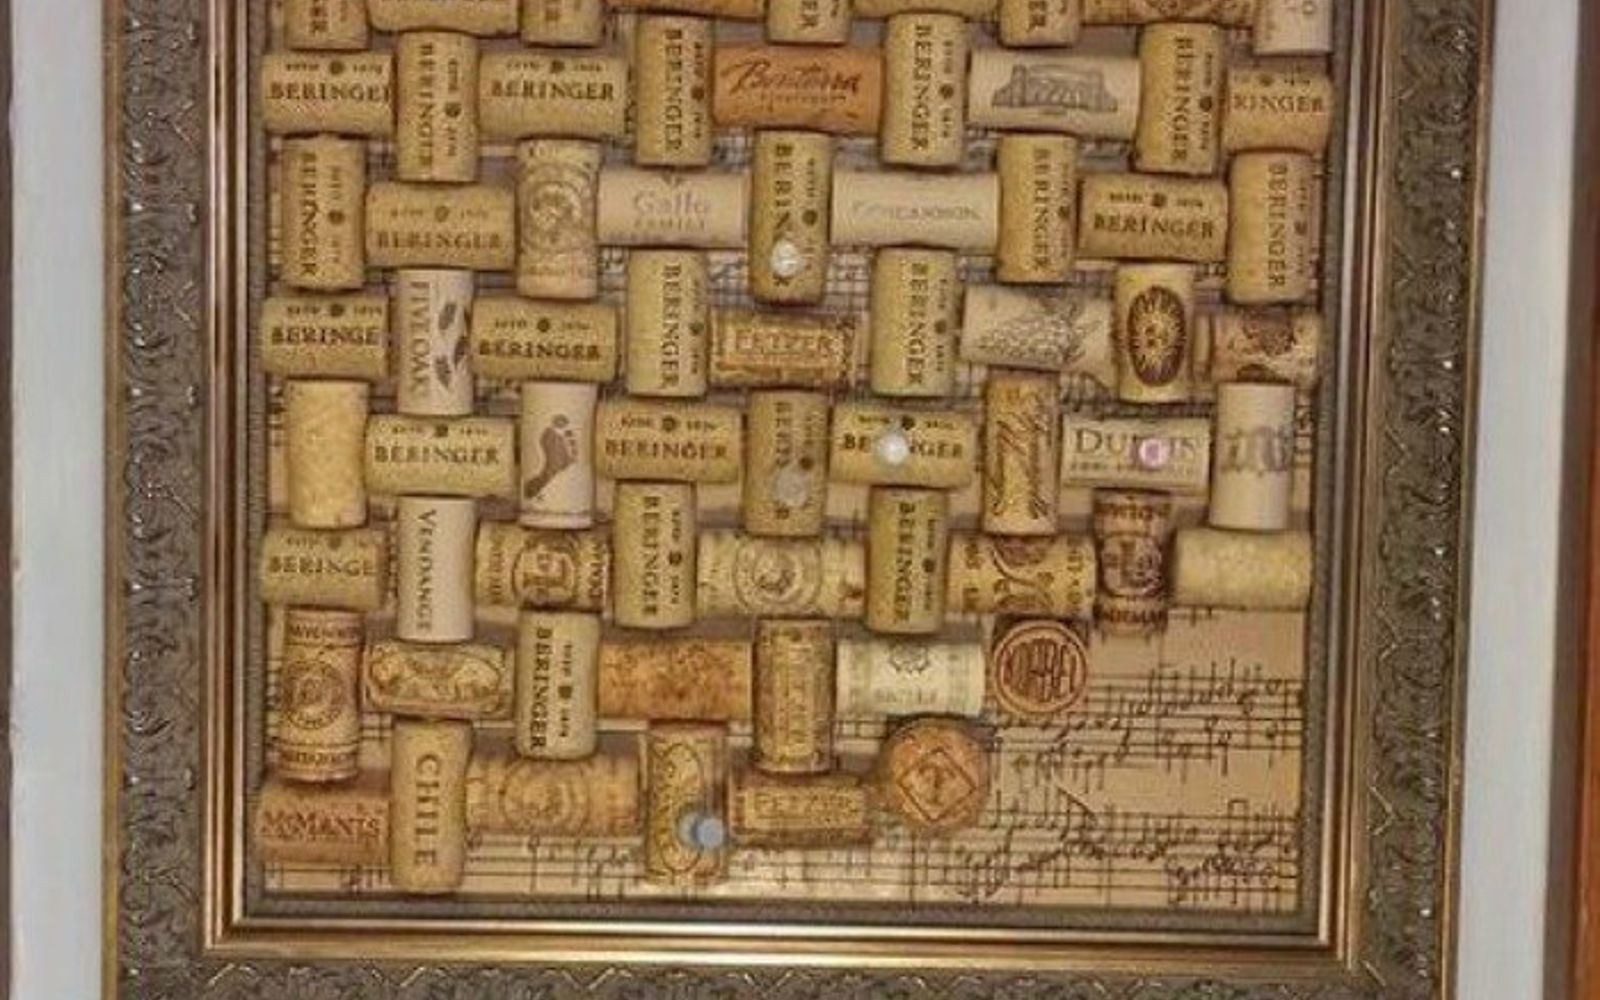 s hide your home s eyesores with these 11 brilliant ideas, home decor, The fix A homemade cork board